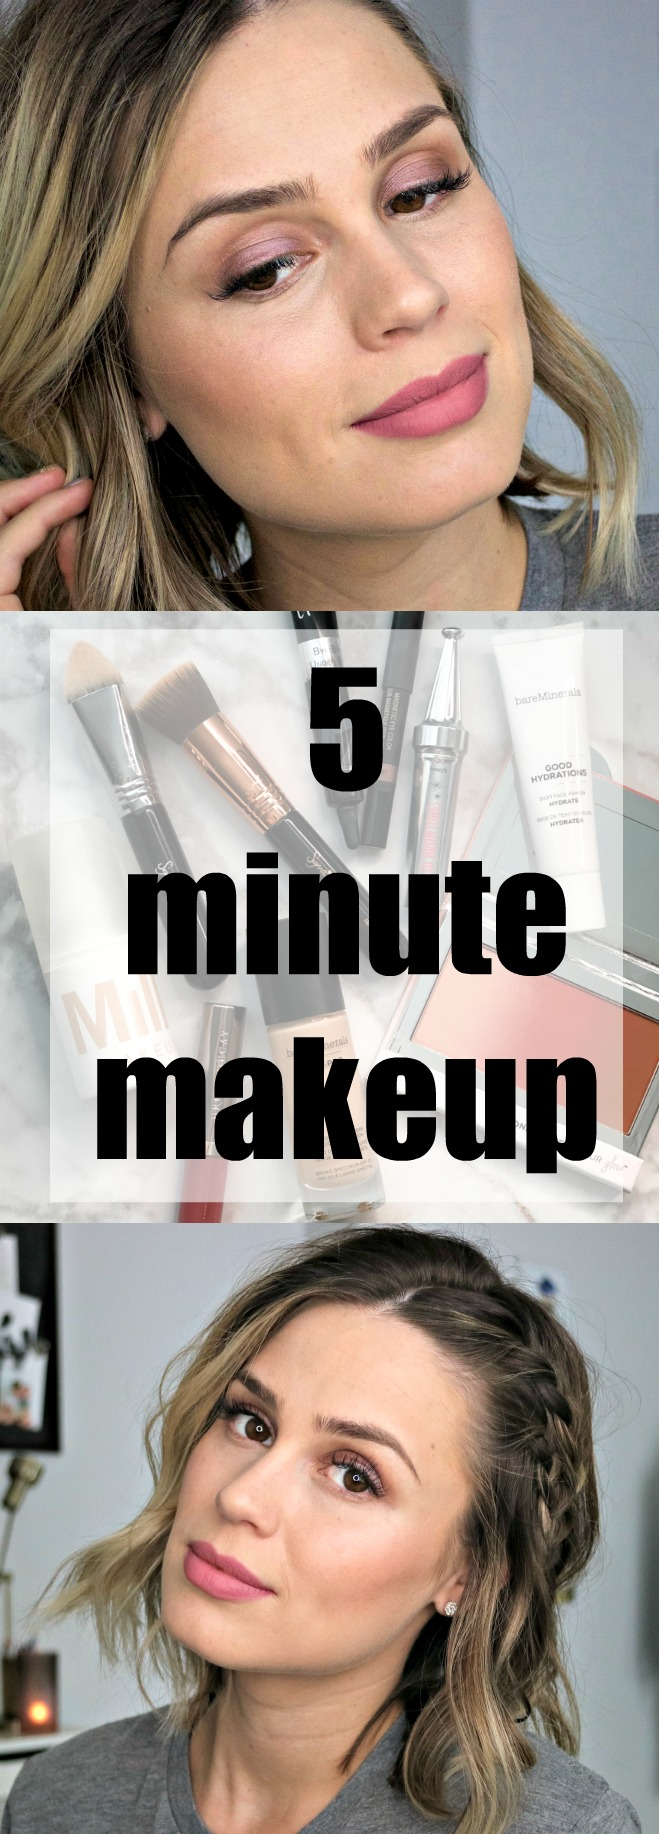 Everyday Makeup | Easy everyday makeup | Uptown with Elly Brown - Everyday Makeup in Under 5 minutes by Houston beauty blogger Uptown with Elly Brown